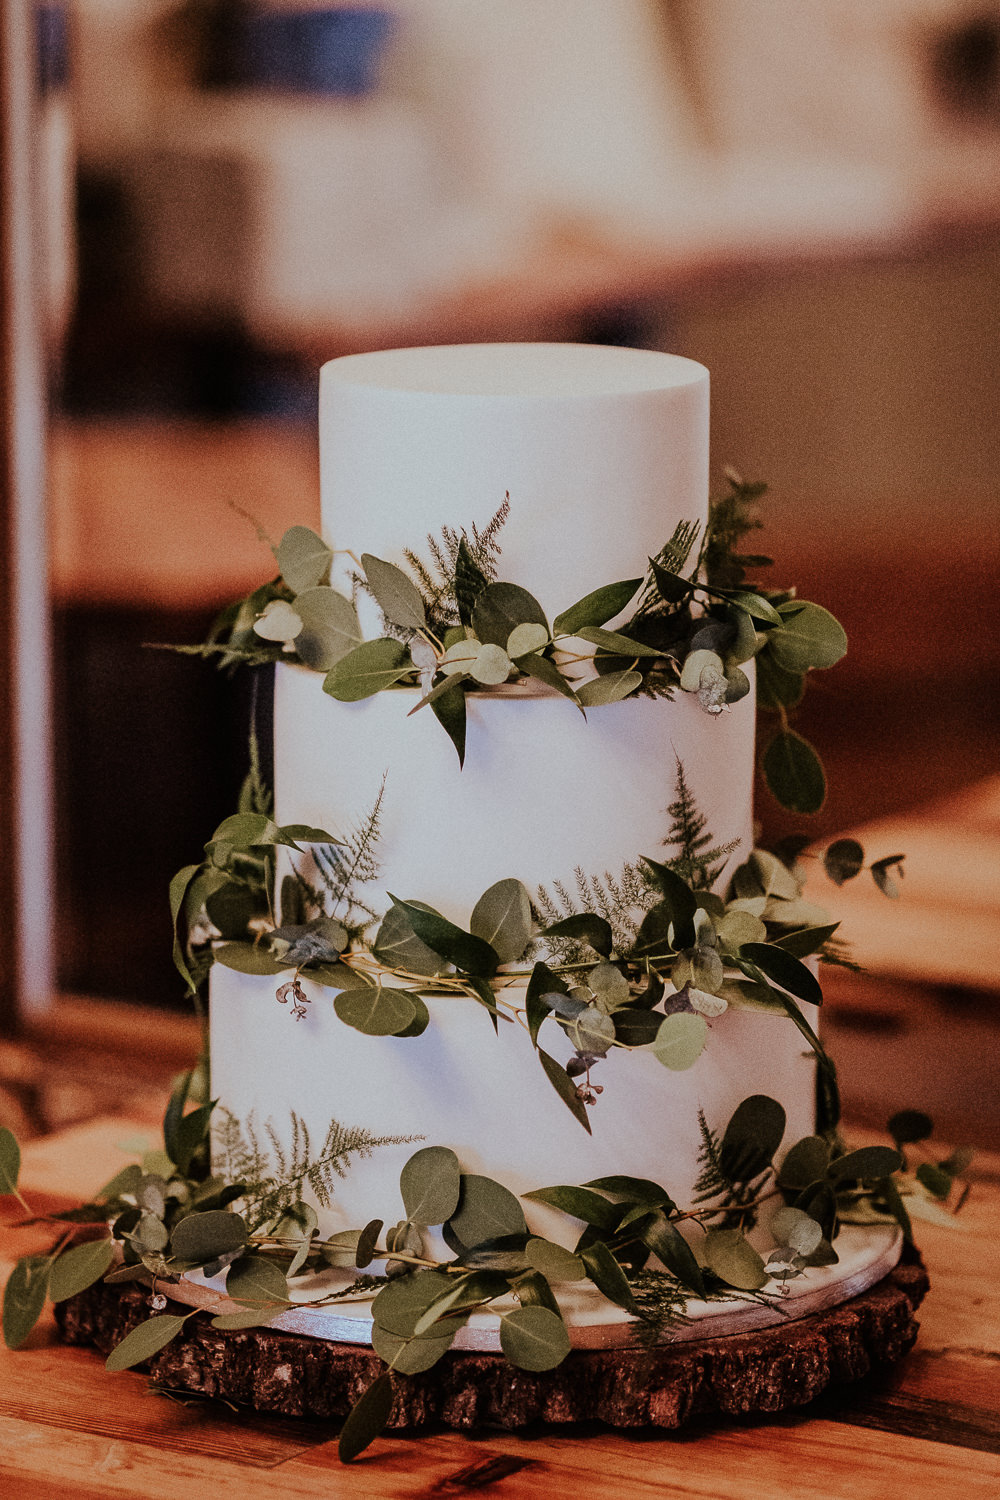 Modern Cake Greenery Foliage Iced White Faversham Wedding Leeds Steven Haddock Photography